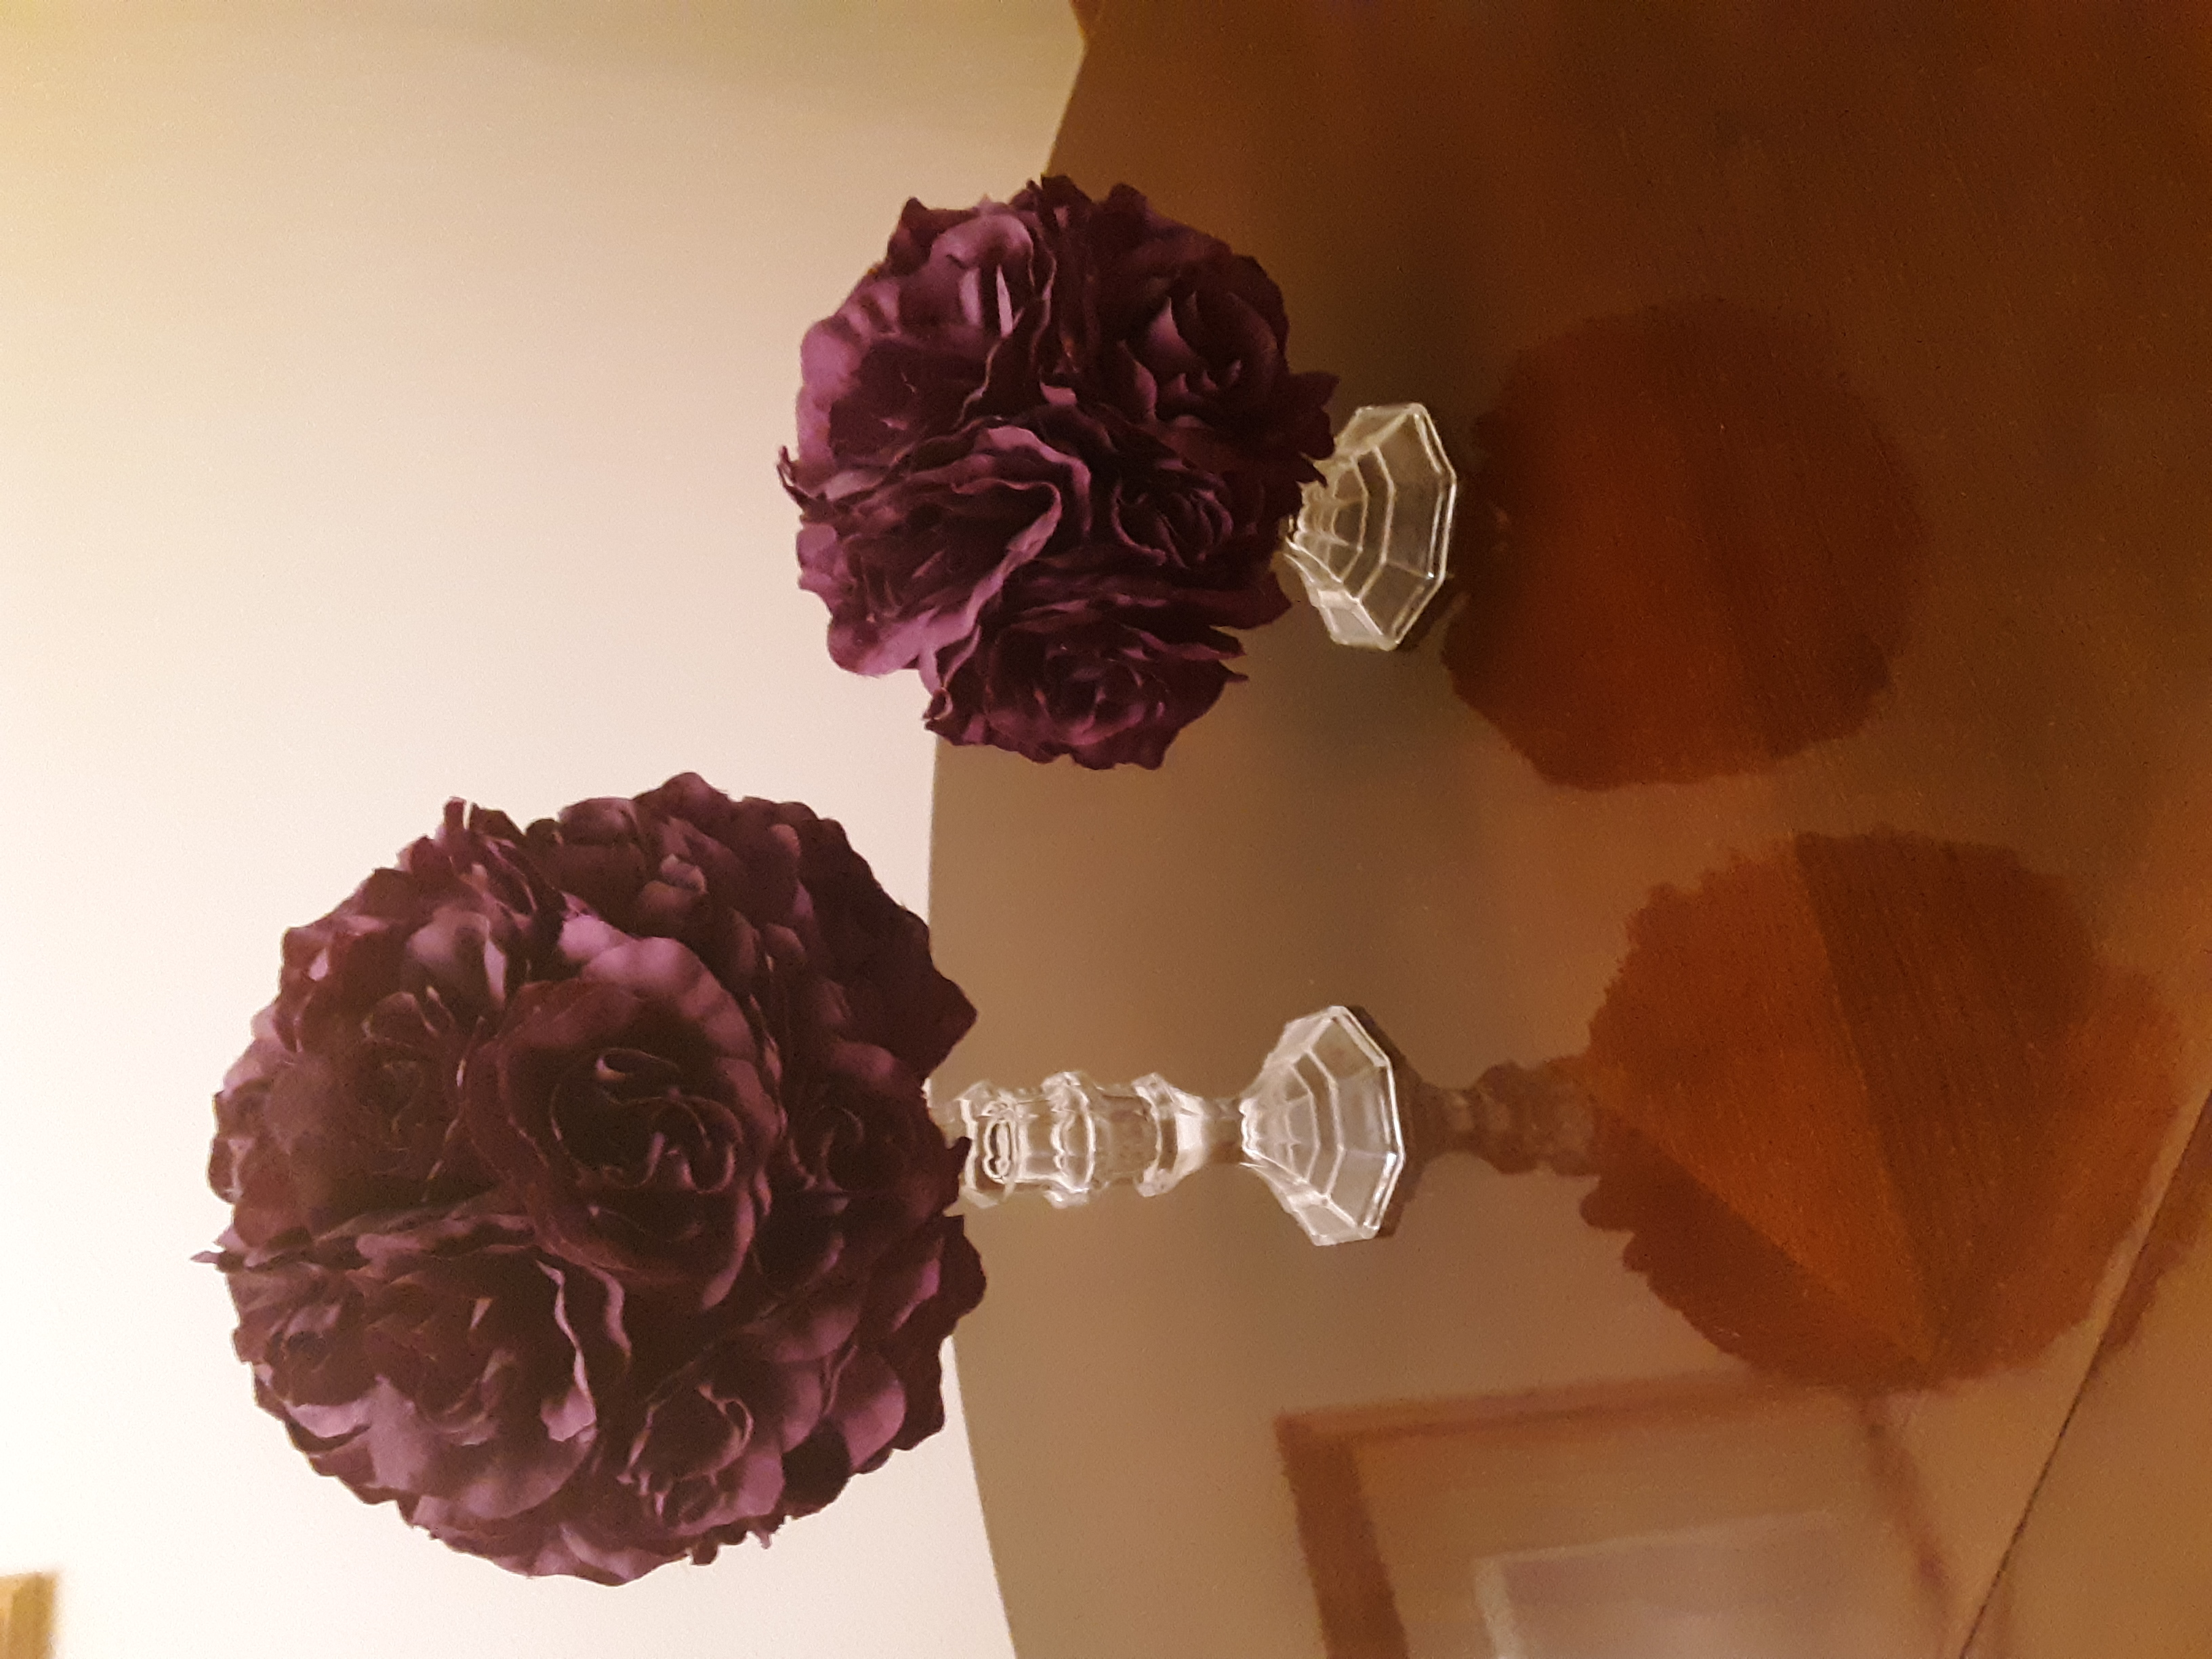 Handmade Dark Purple Floral Centerpieces On Glass Stands, Plus Matching Decorated Box For Cards